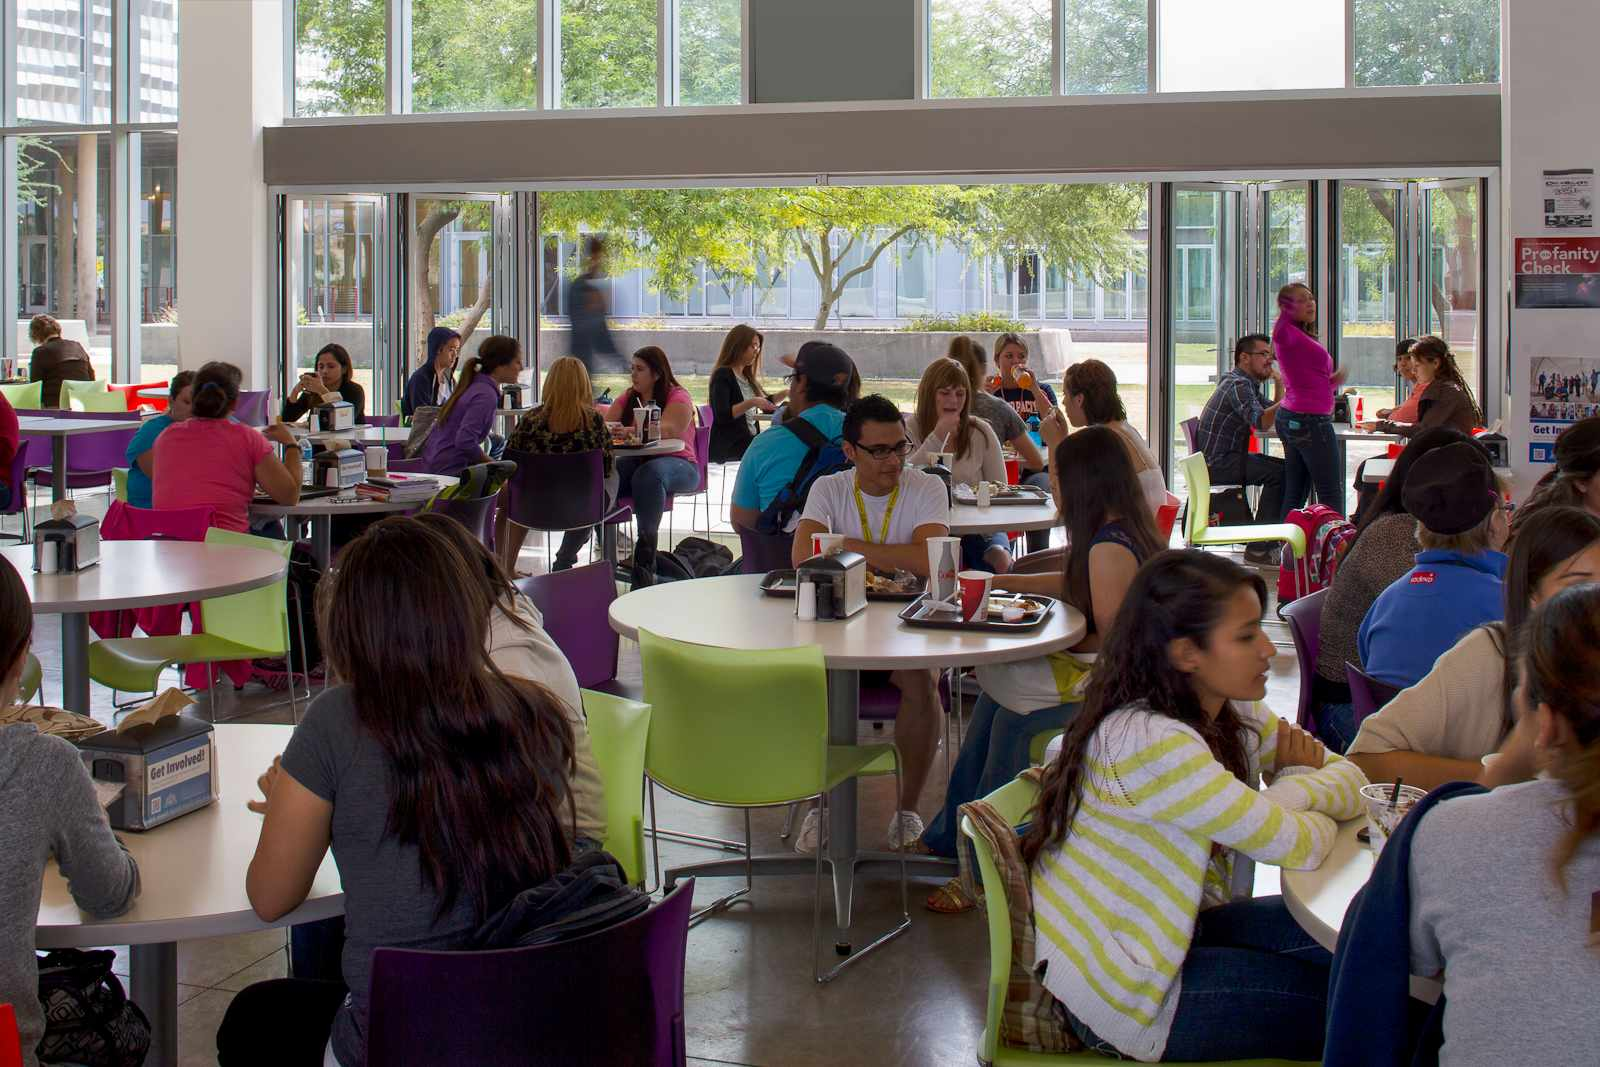 Biophilic-design-in-school-cafeteria